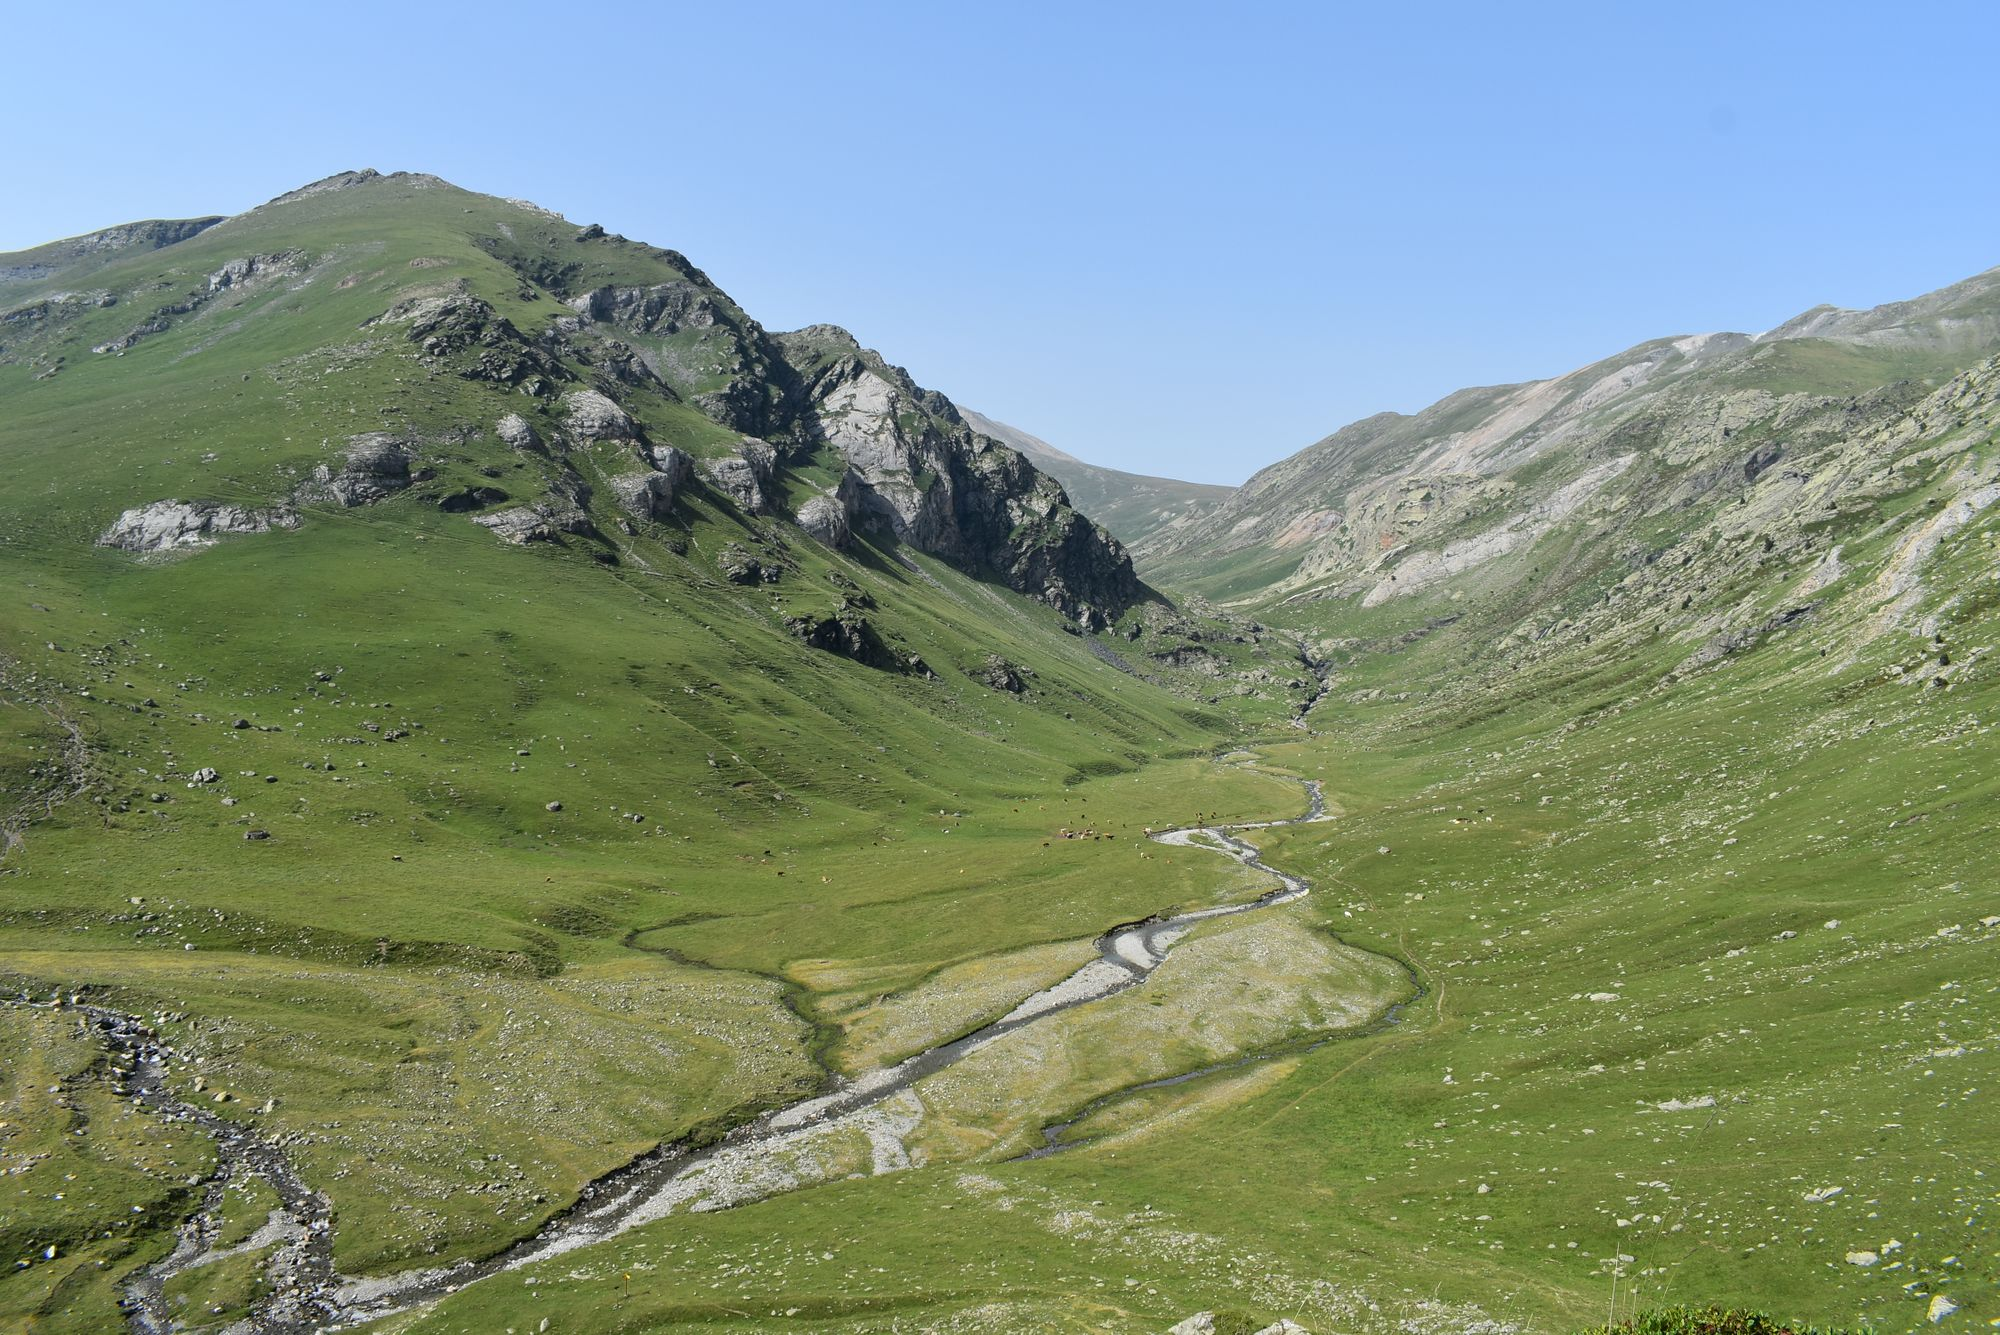 Summer hiking in the Pyrenees (part 1)